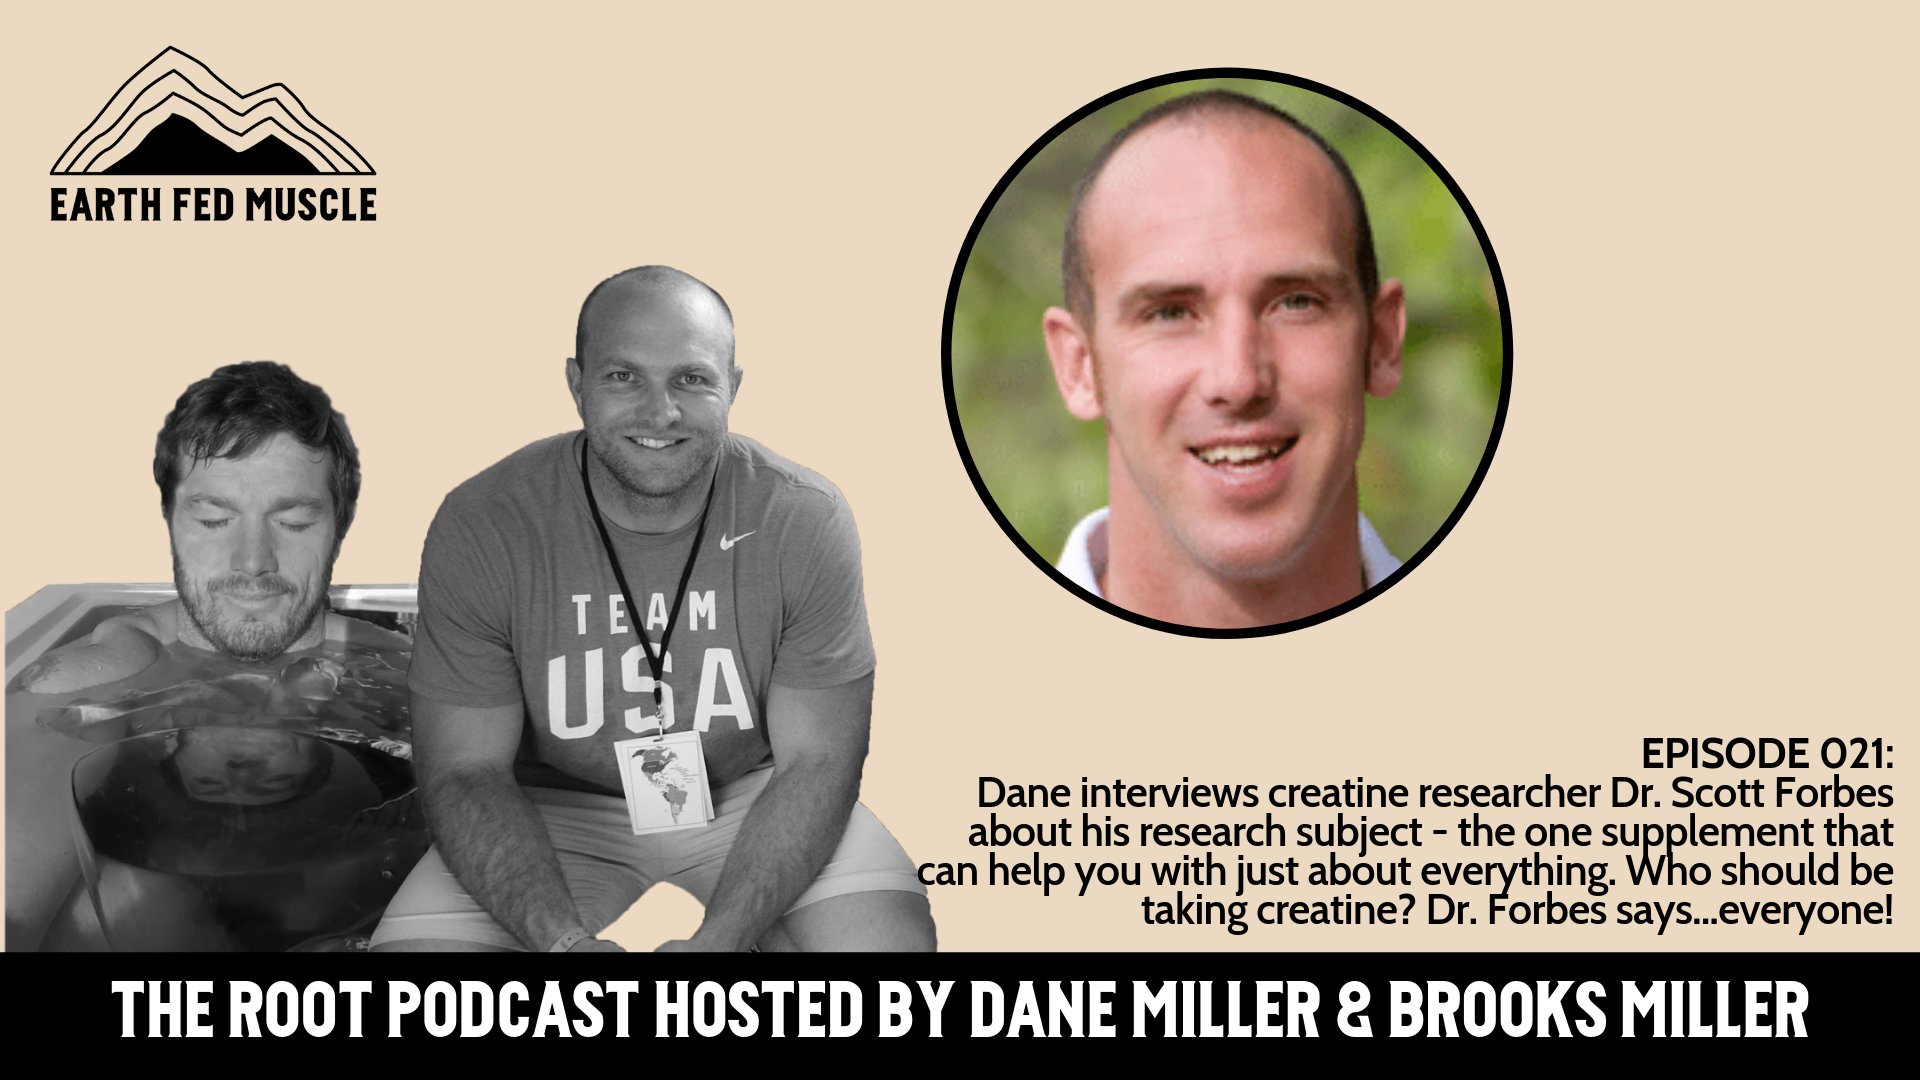 021: THE ROOT - THE MIRACLE SUPPLEMENT WITH DR. SCOTT FORBES